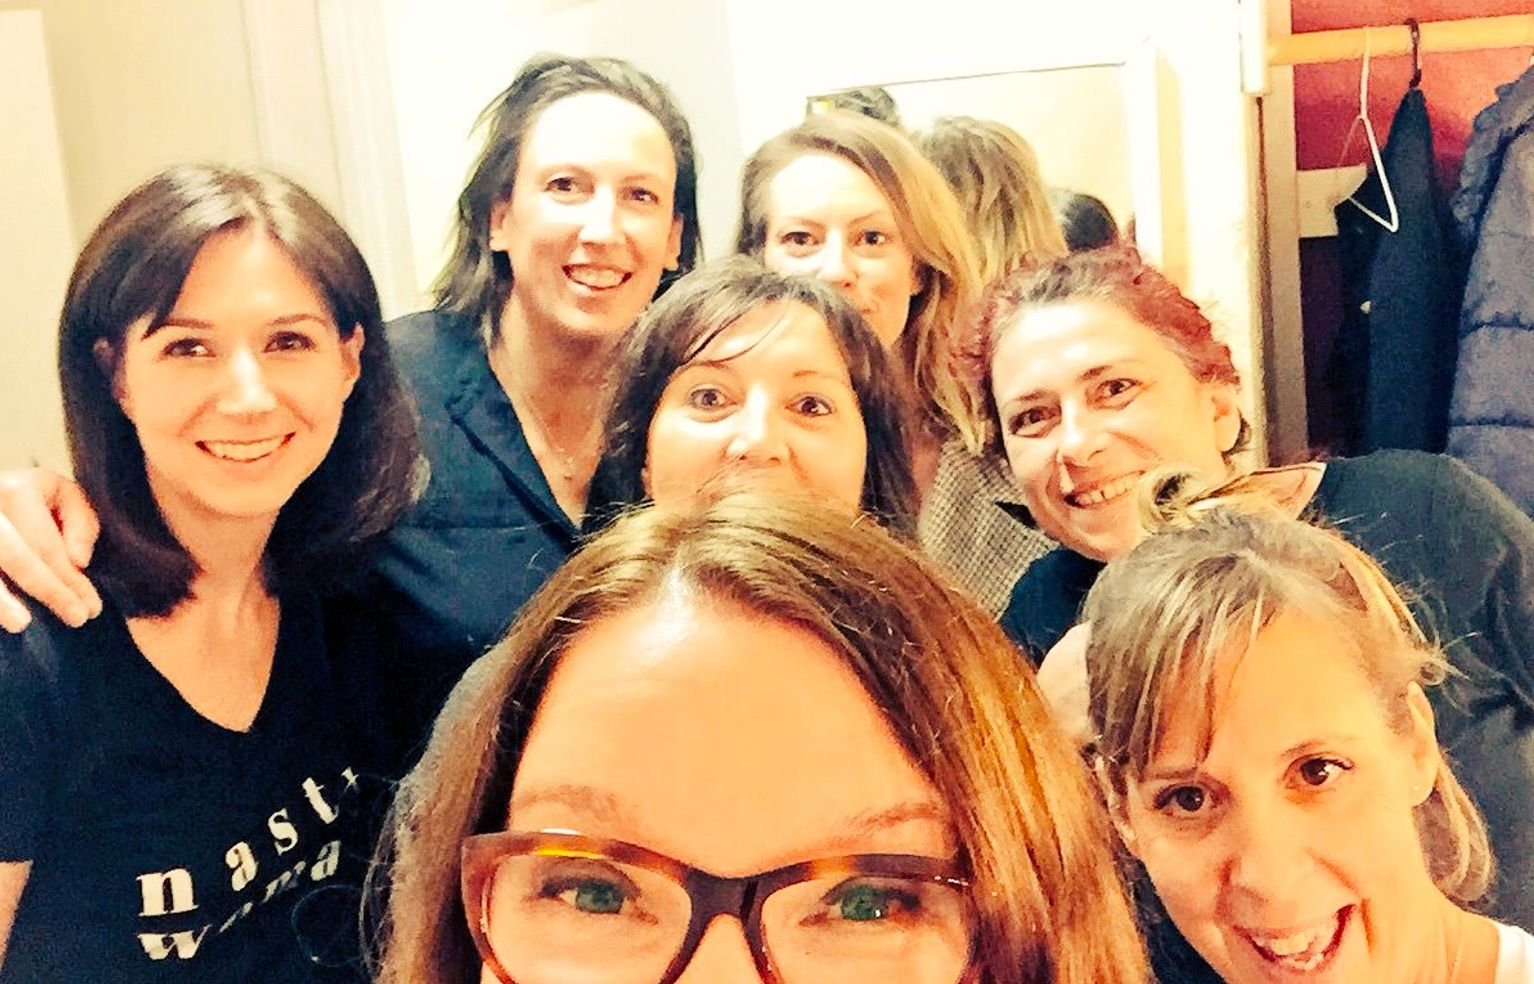 RT @StandardIssueUK: Funny people having a chat? Don't mind if we do. #Podcast https://t.co/wzgGBFexnK https://t.co/N0VMf5mR98